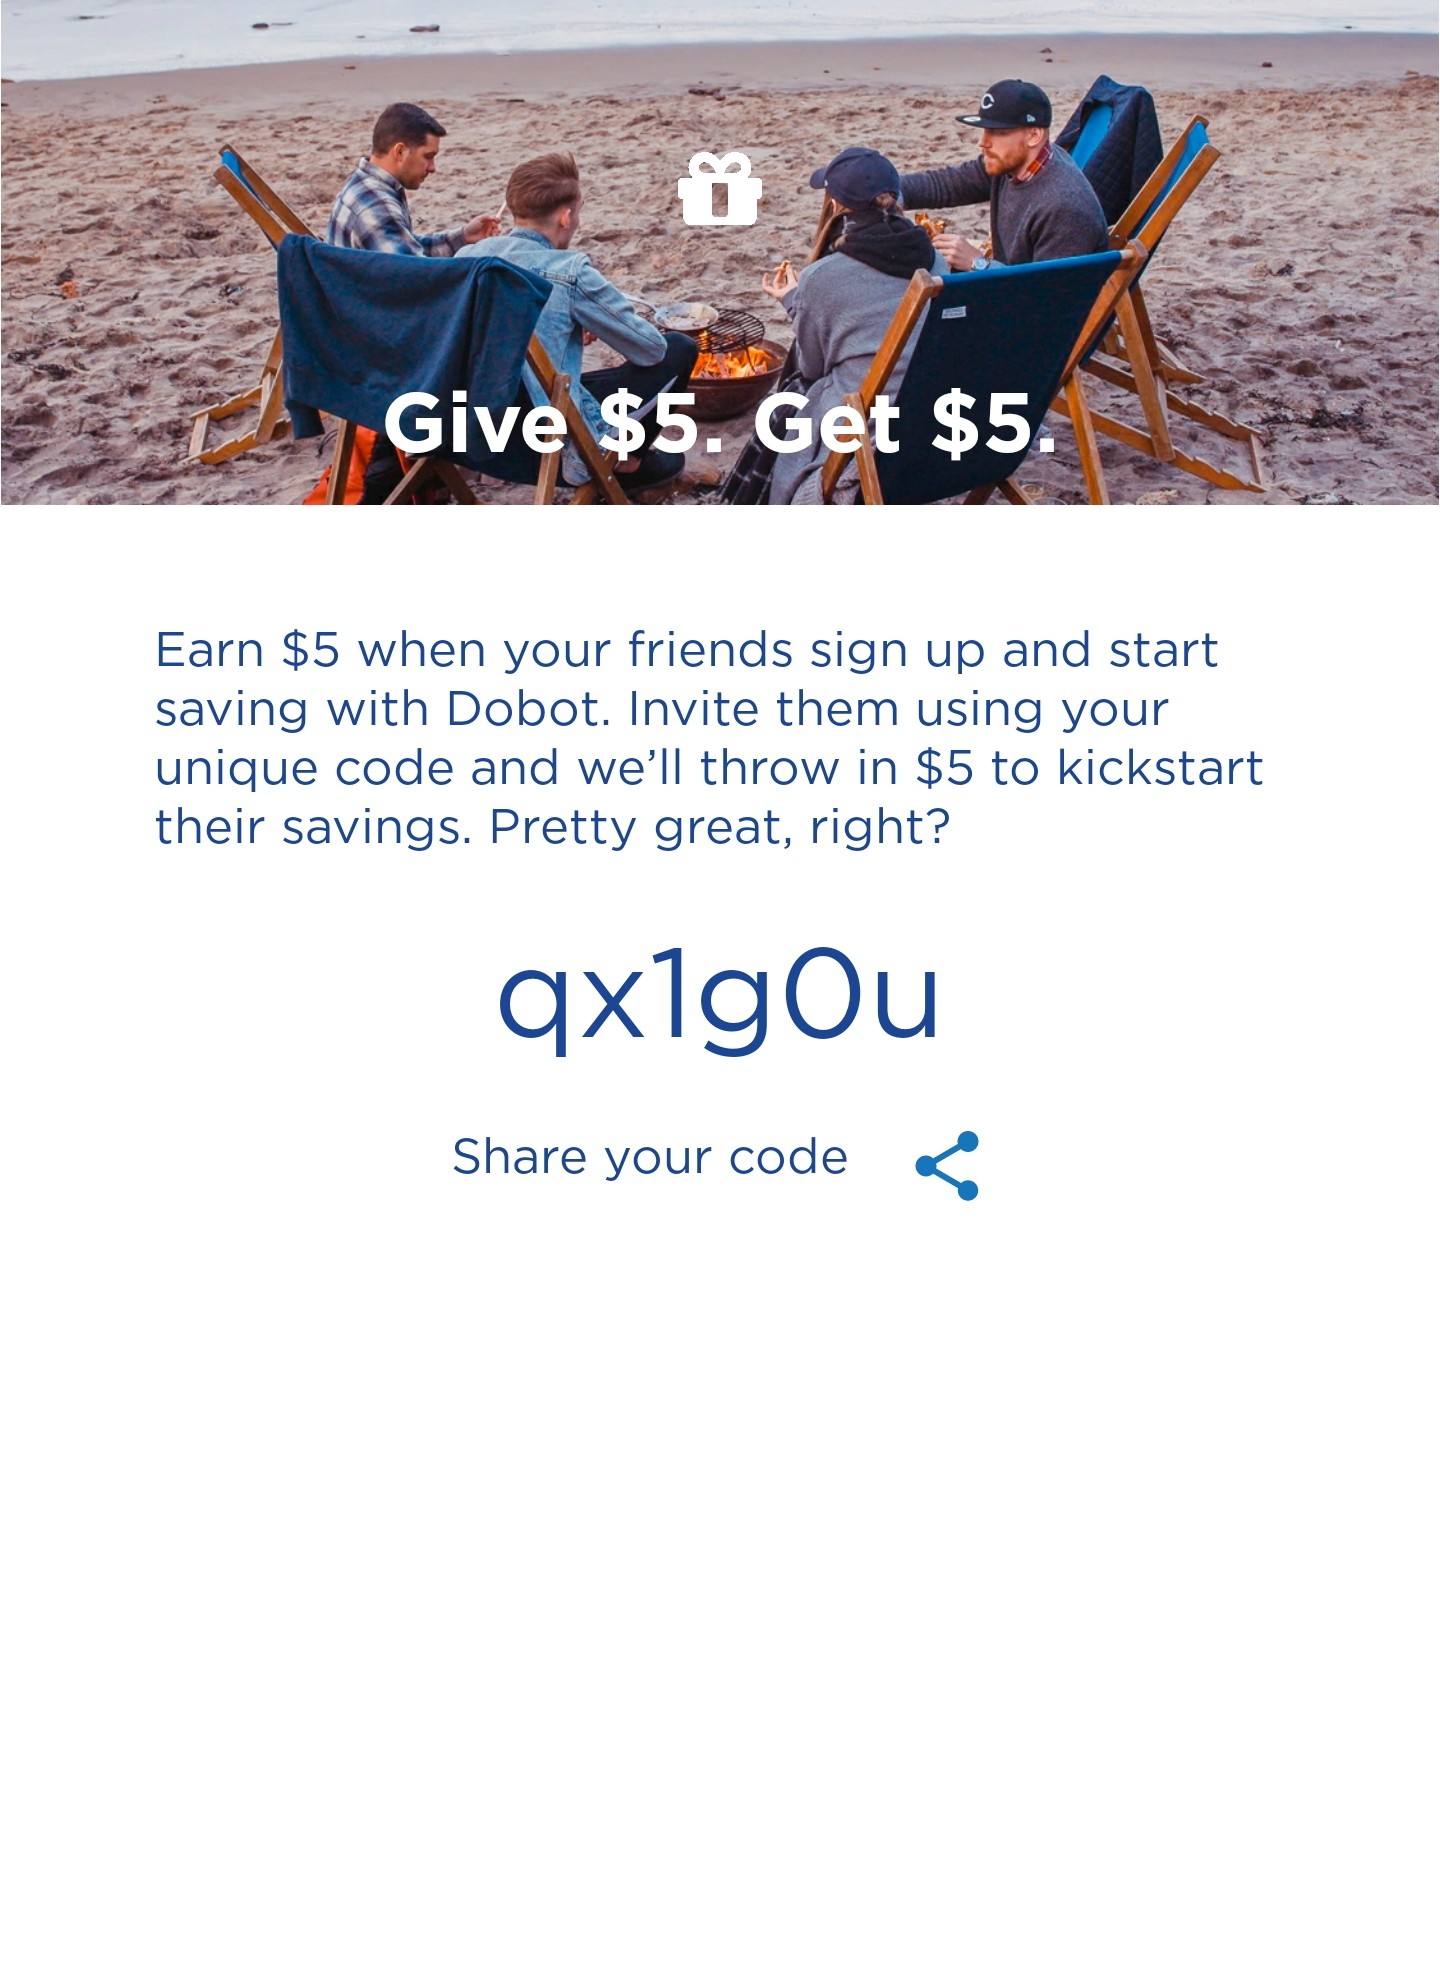 Get $5 if you signup for Dobot